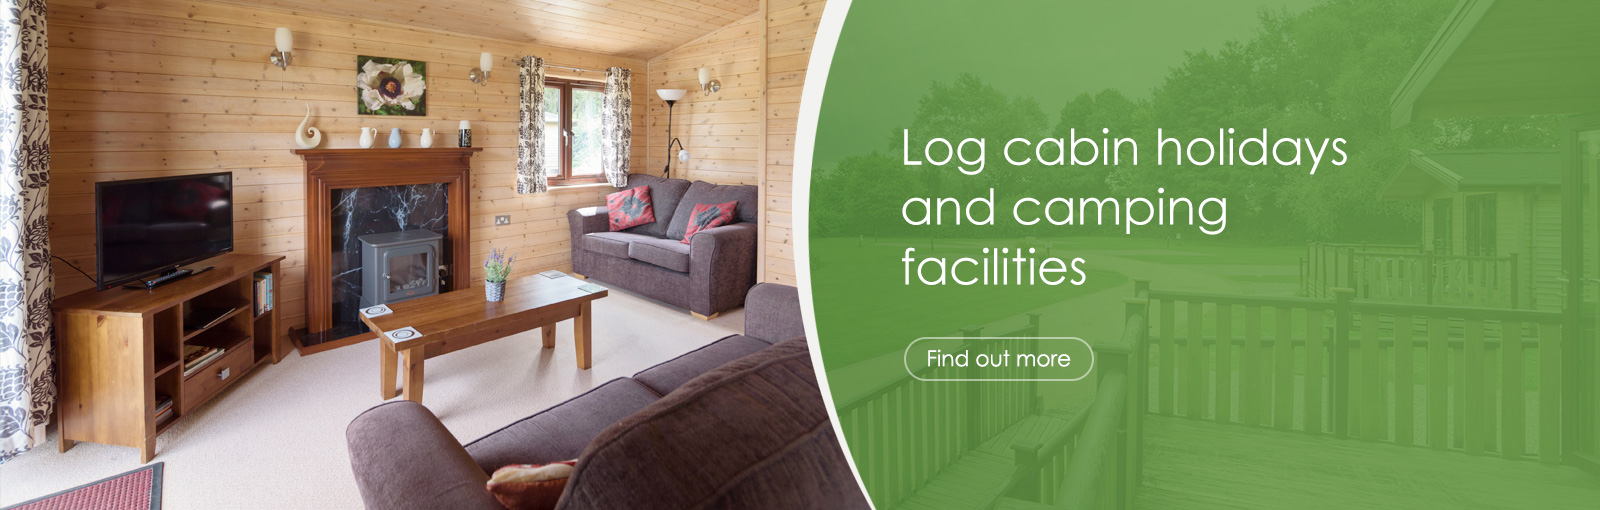 Log cabin holidays and camping facilities